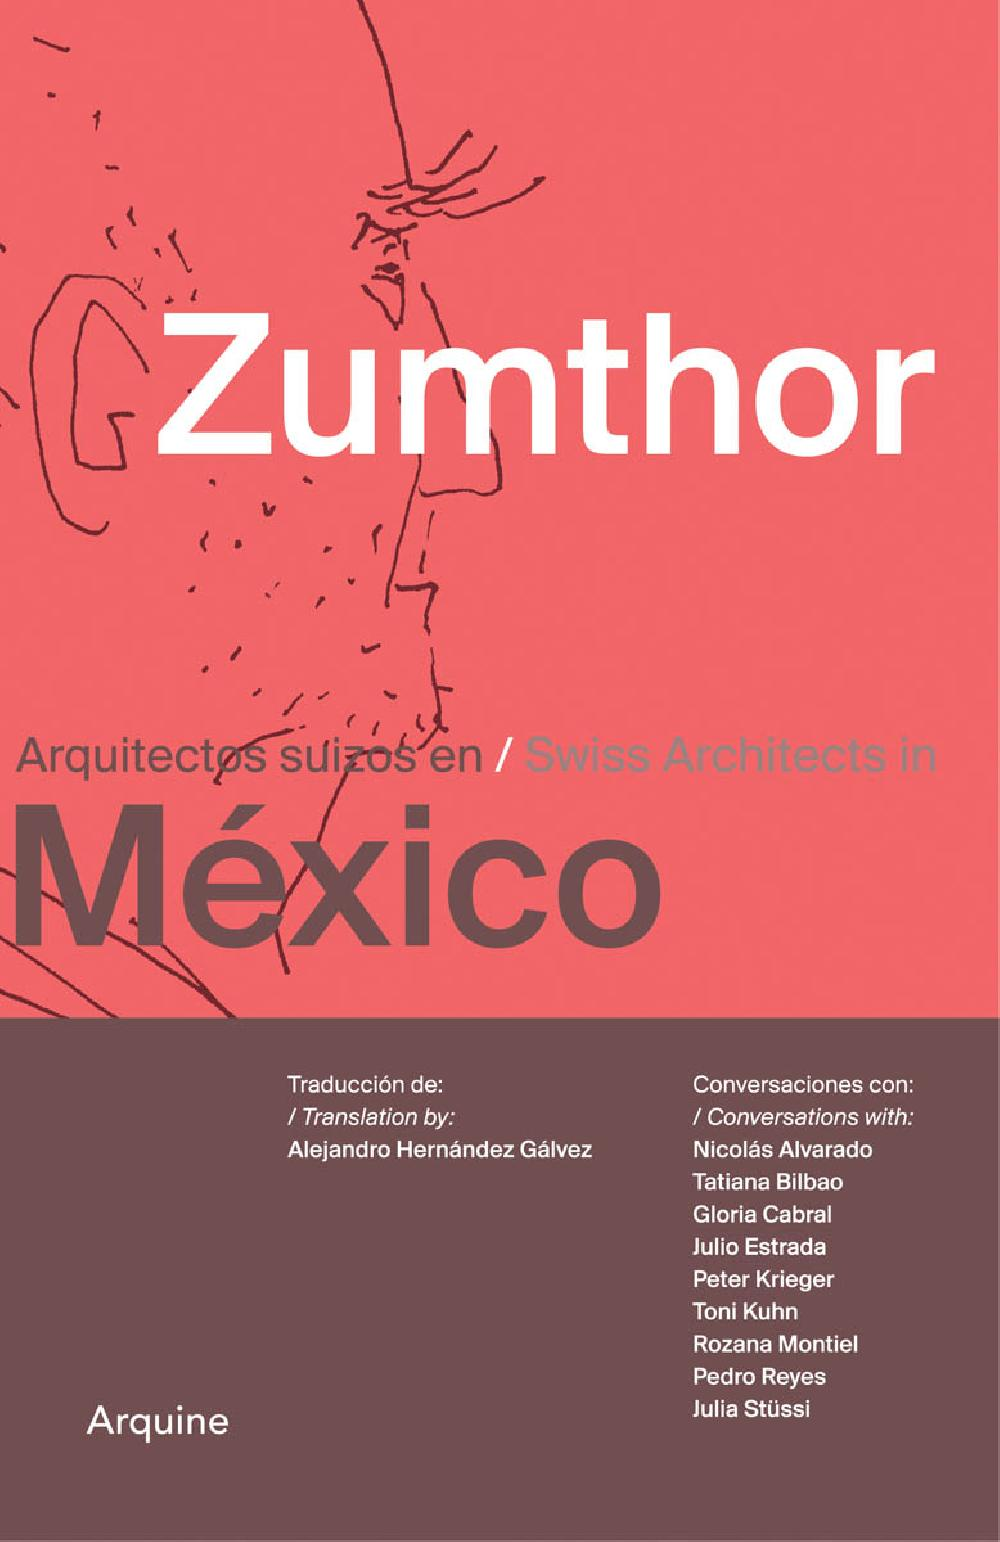 Zumthor: Swiss Architects in / Arquitectos suizos en Mexico